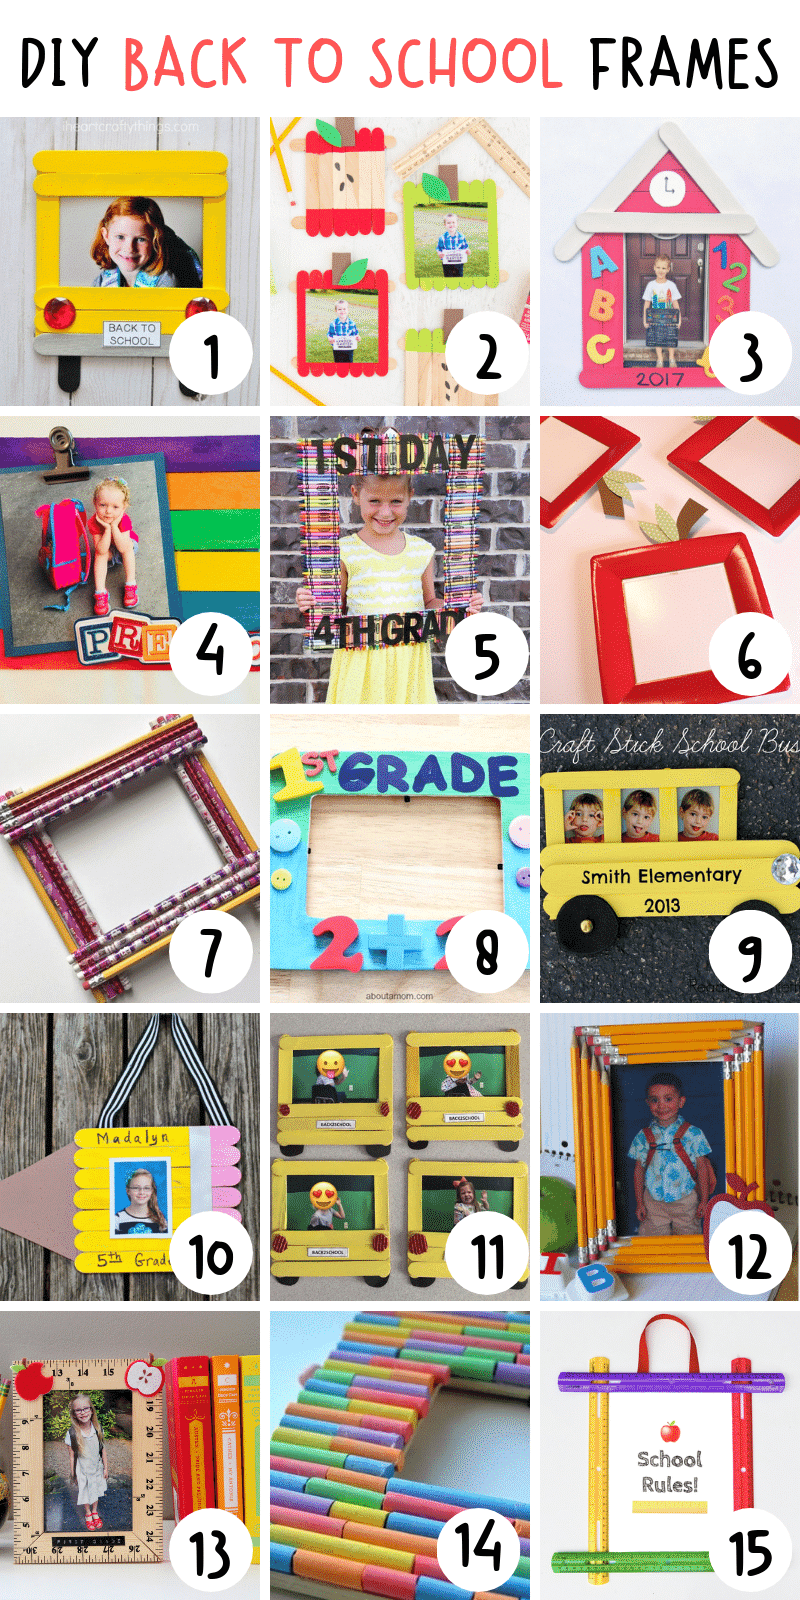 Here are over 70 clever and cute back to school crafts that are a great way to motivate your kids and get them excited about heading back to school. #craftsforkids #backtoschoolcrafts #craftideasforbacktoschool #craftsforpreschoolers #backtoschoolcraftsforkids